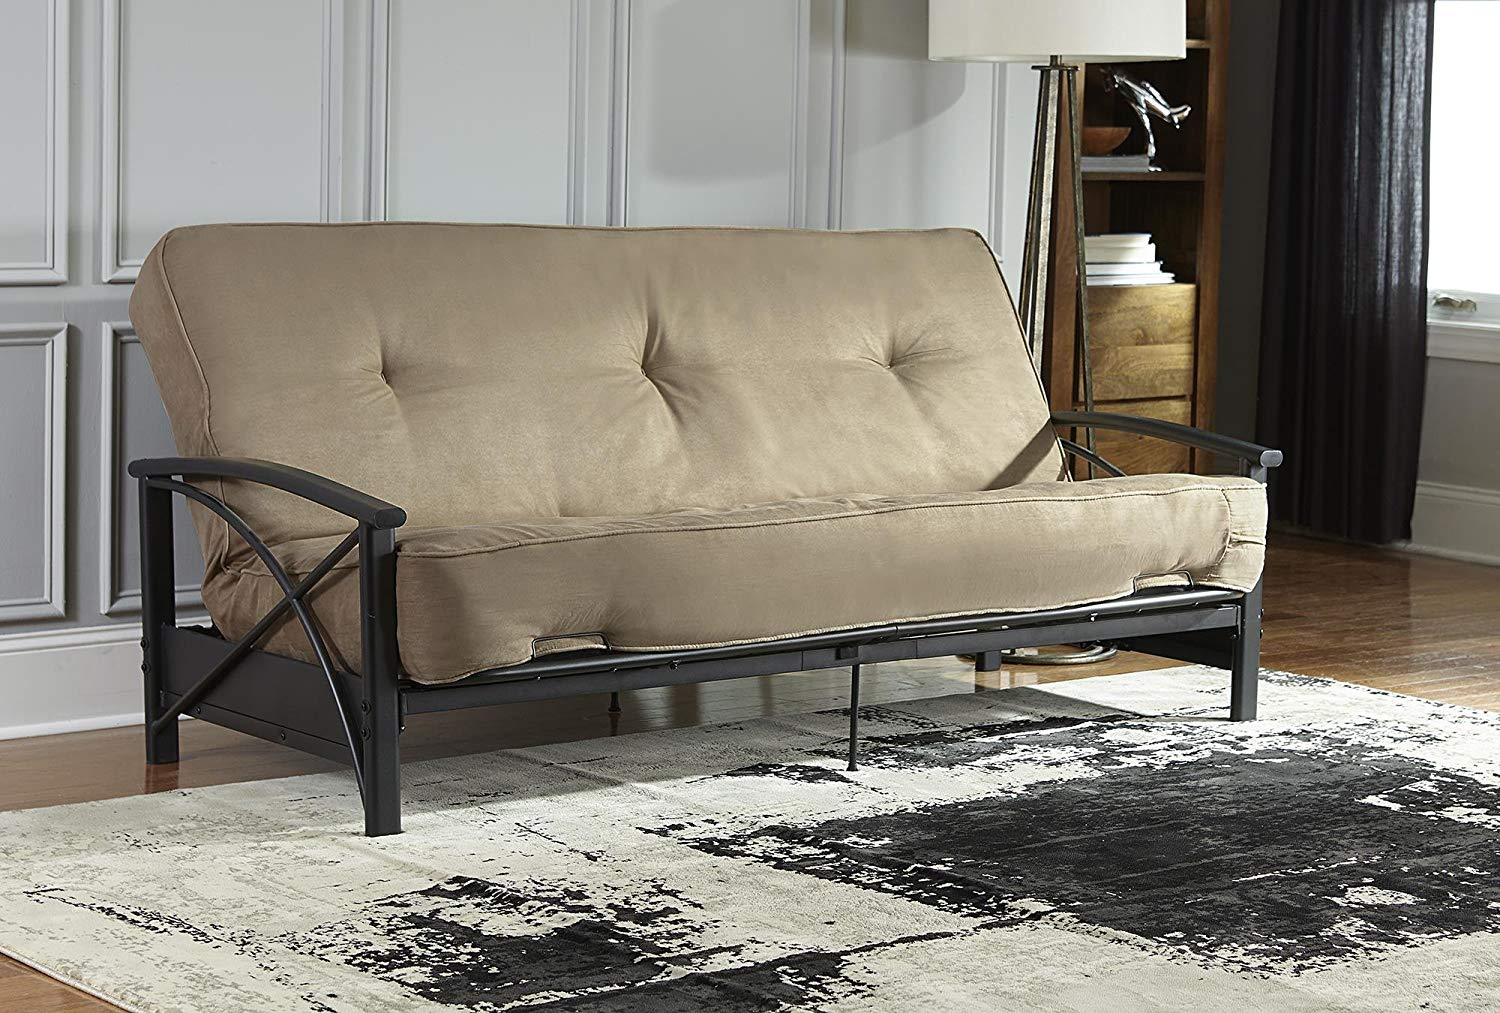 DHP Kent Futon 2 Top 10 Sofas for Sale Furniture Stores